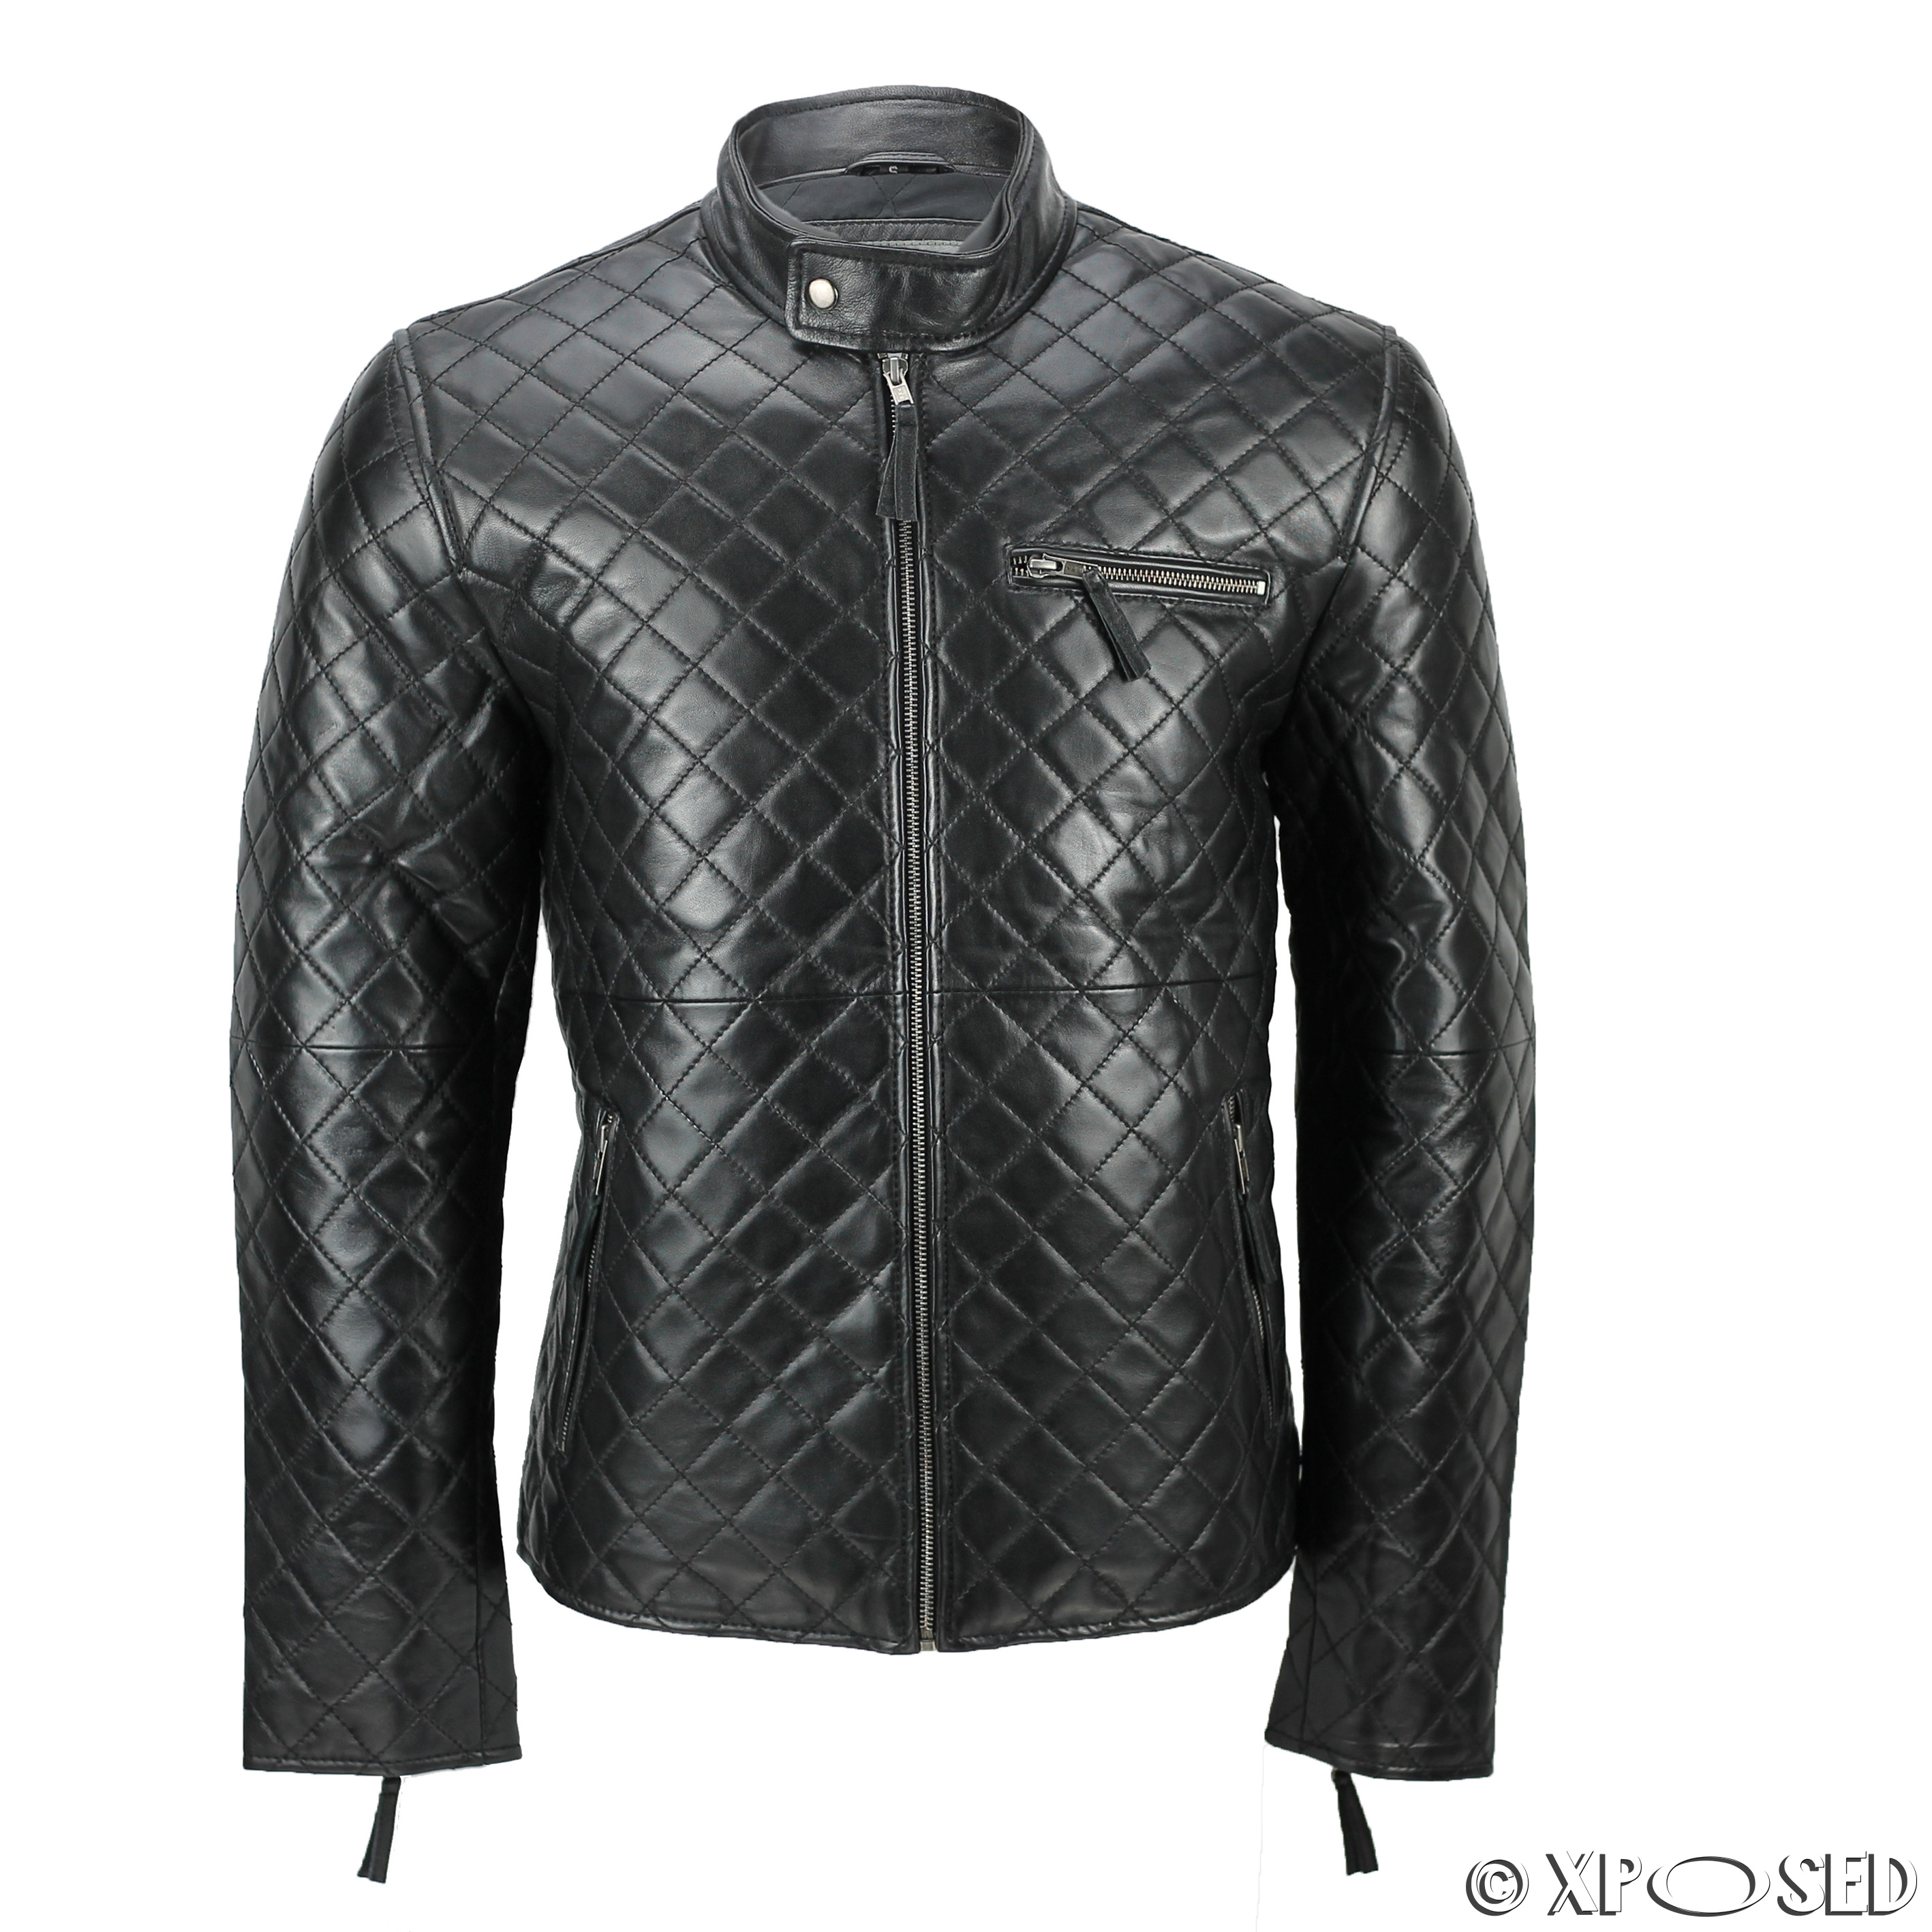 XPOSED Mens Real Leather Black Smart Casual Quilted Biker Style ... : quilted biker leather jacket - Adamdwight.com